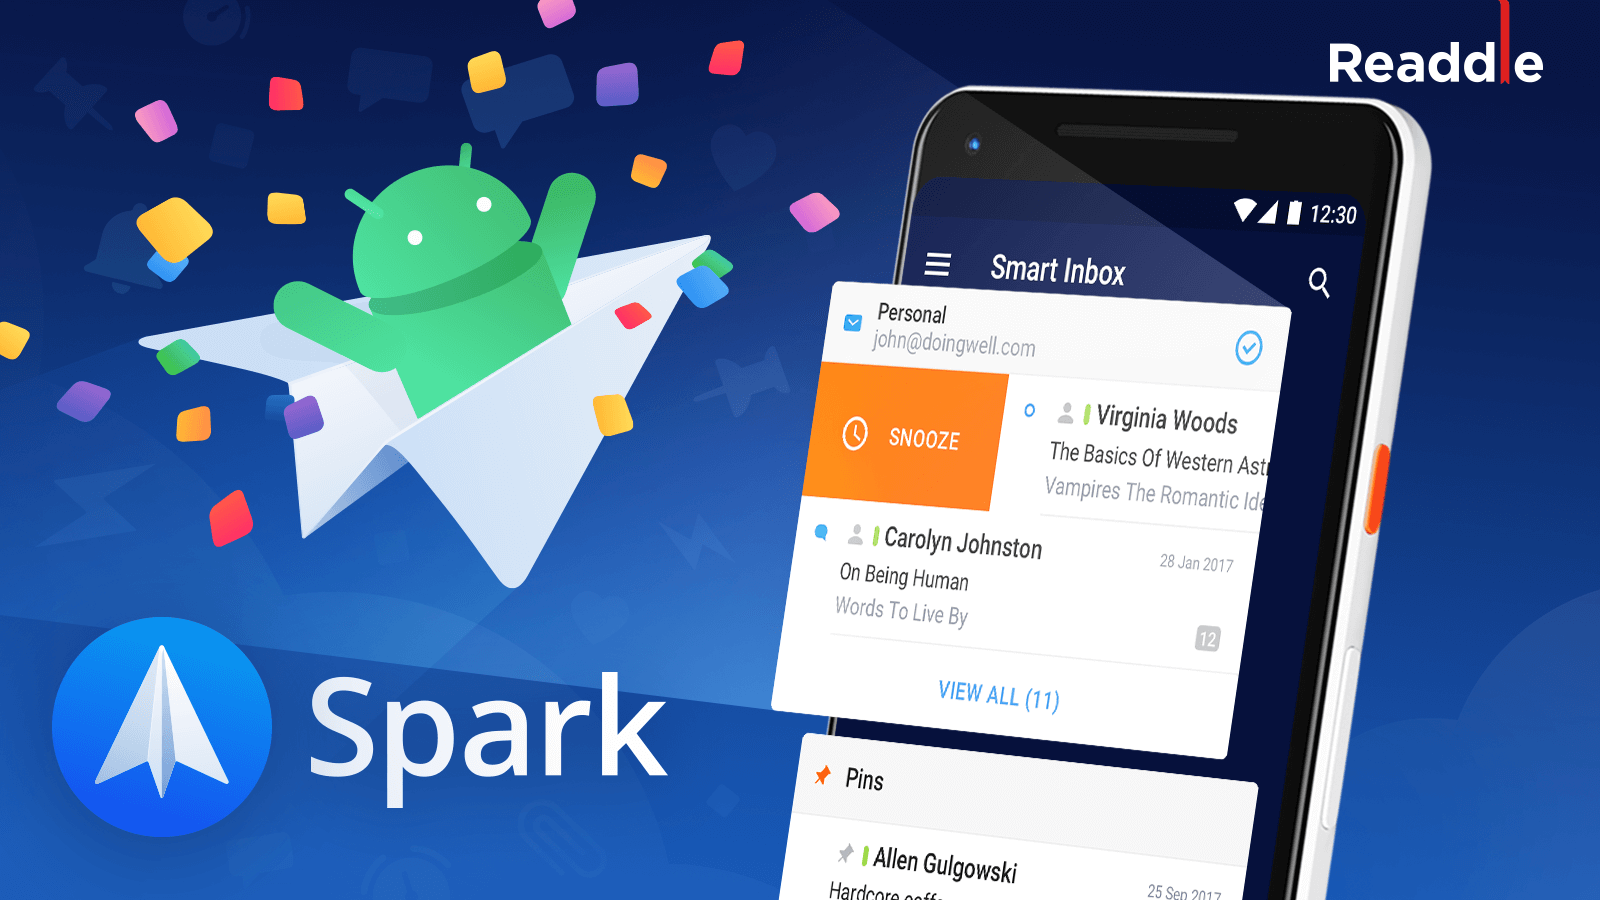 Spark for Android: Readdle's take on the Future of Email